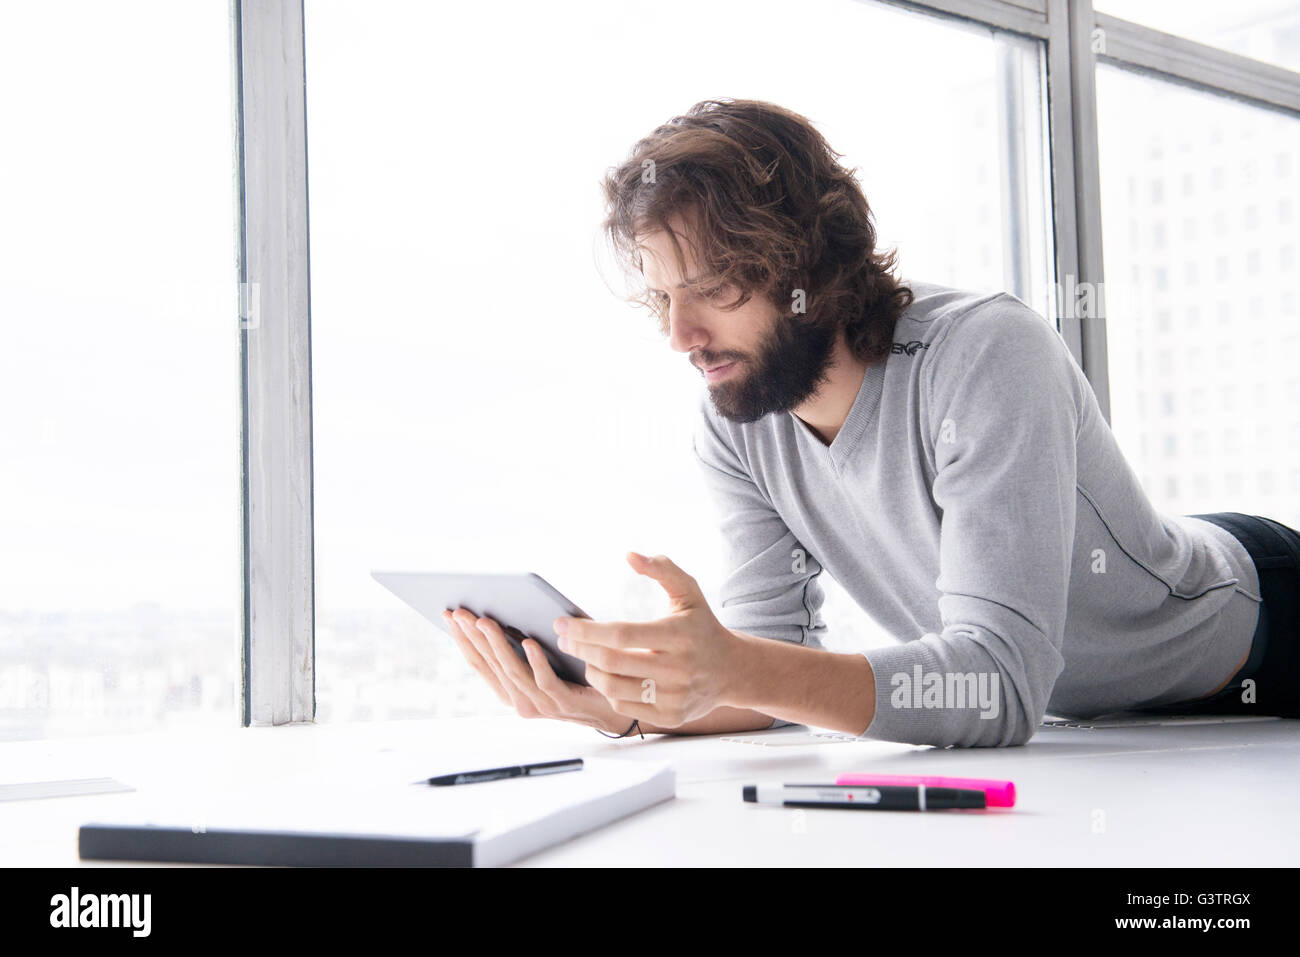 A professional man making notes on a tablet computer in a high rise office environment. - Stock Image